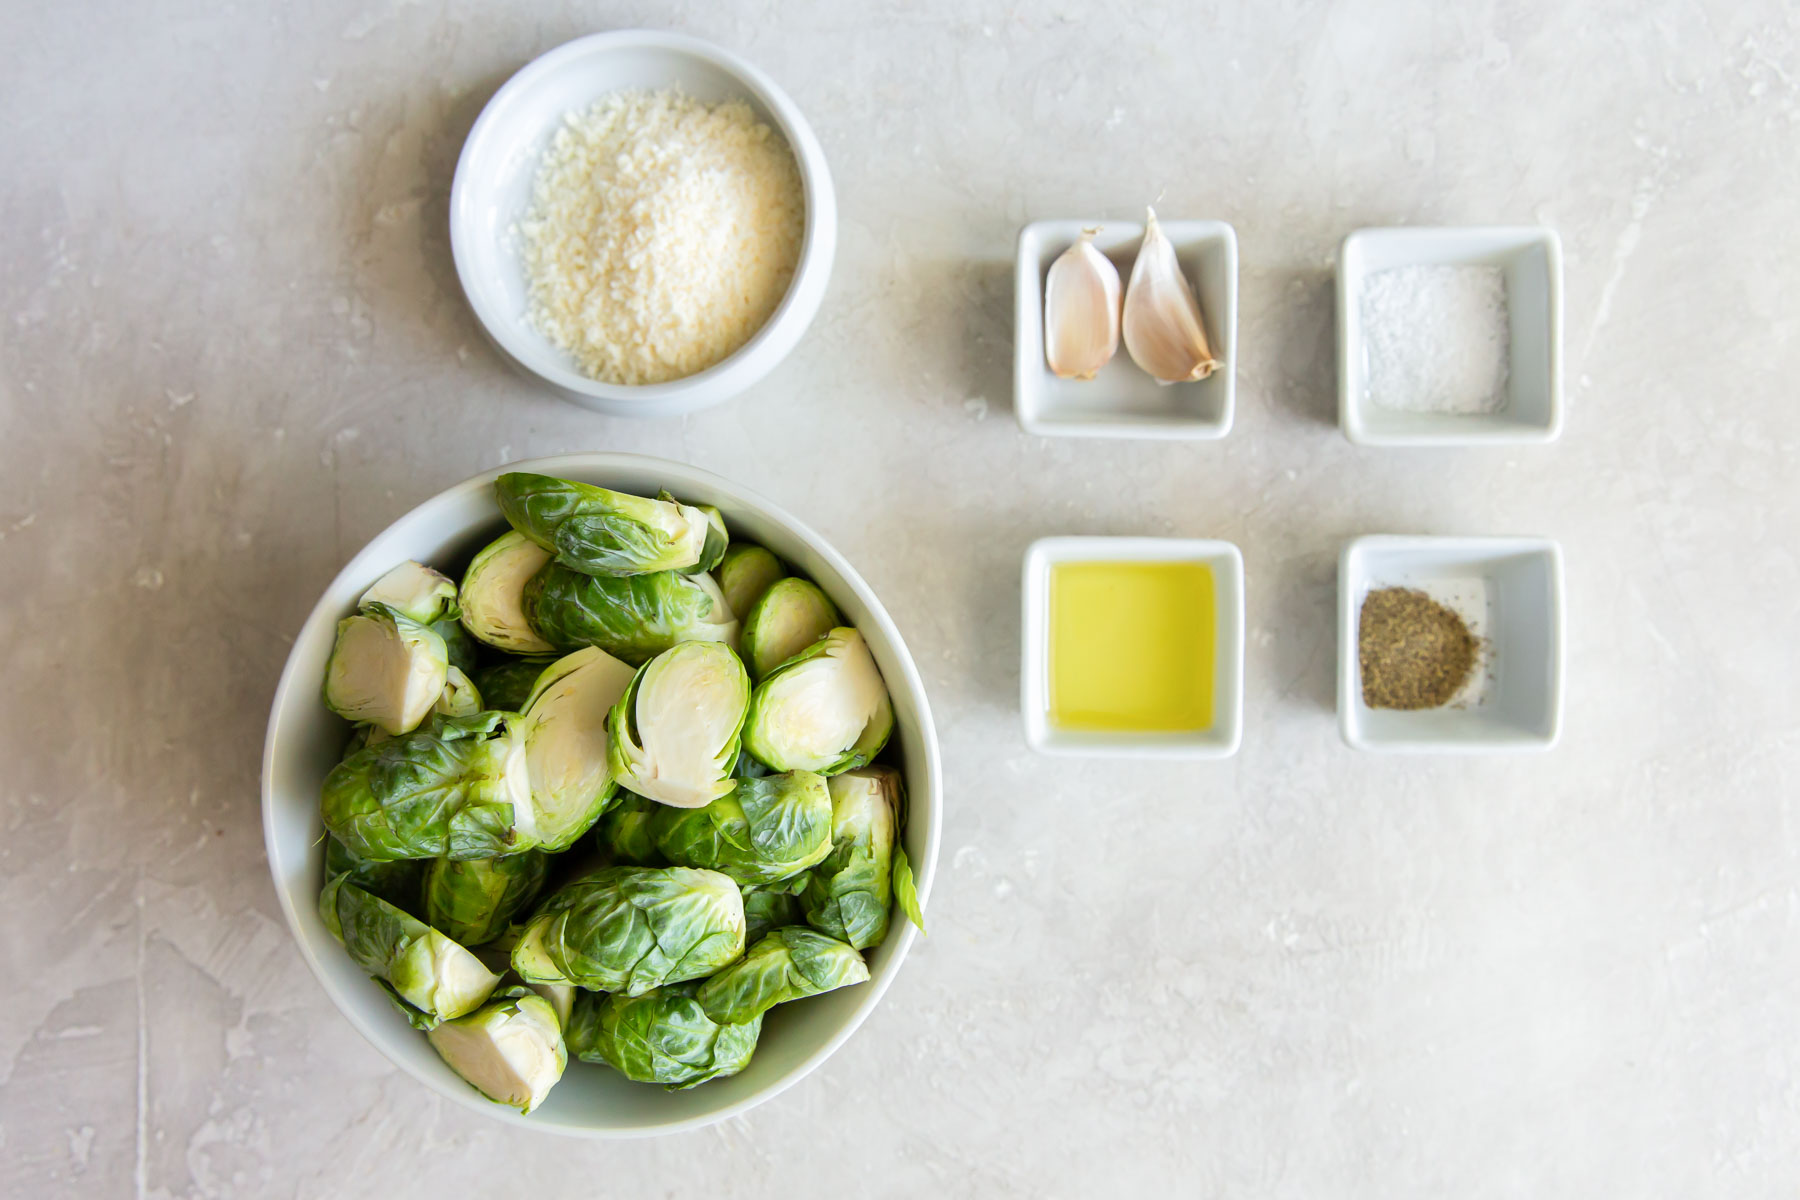 ingredients for air fryer brussels sprouts recipe